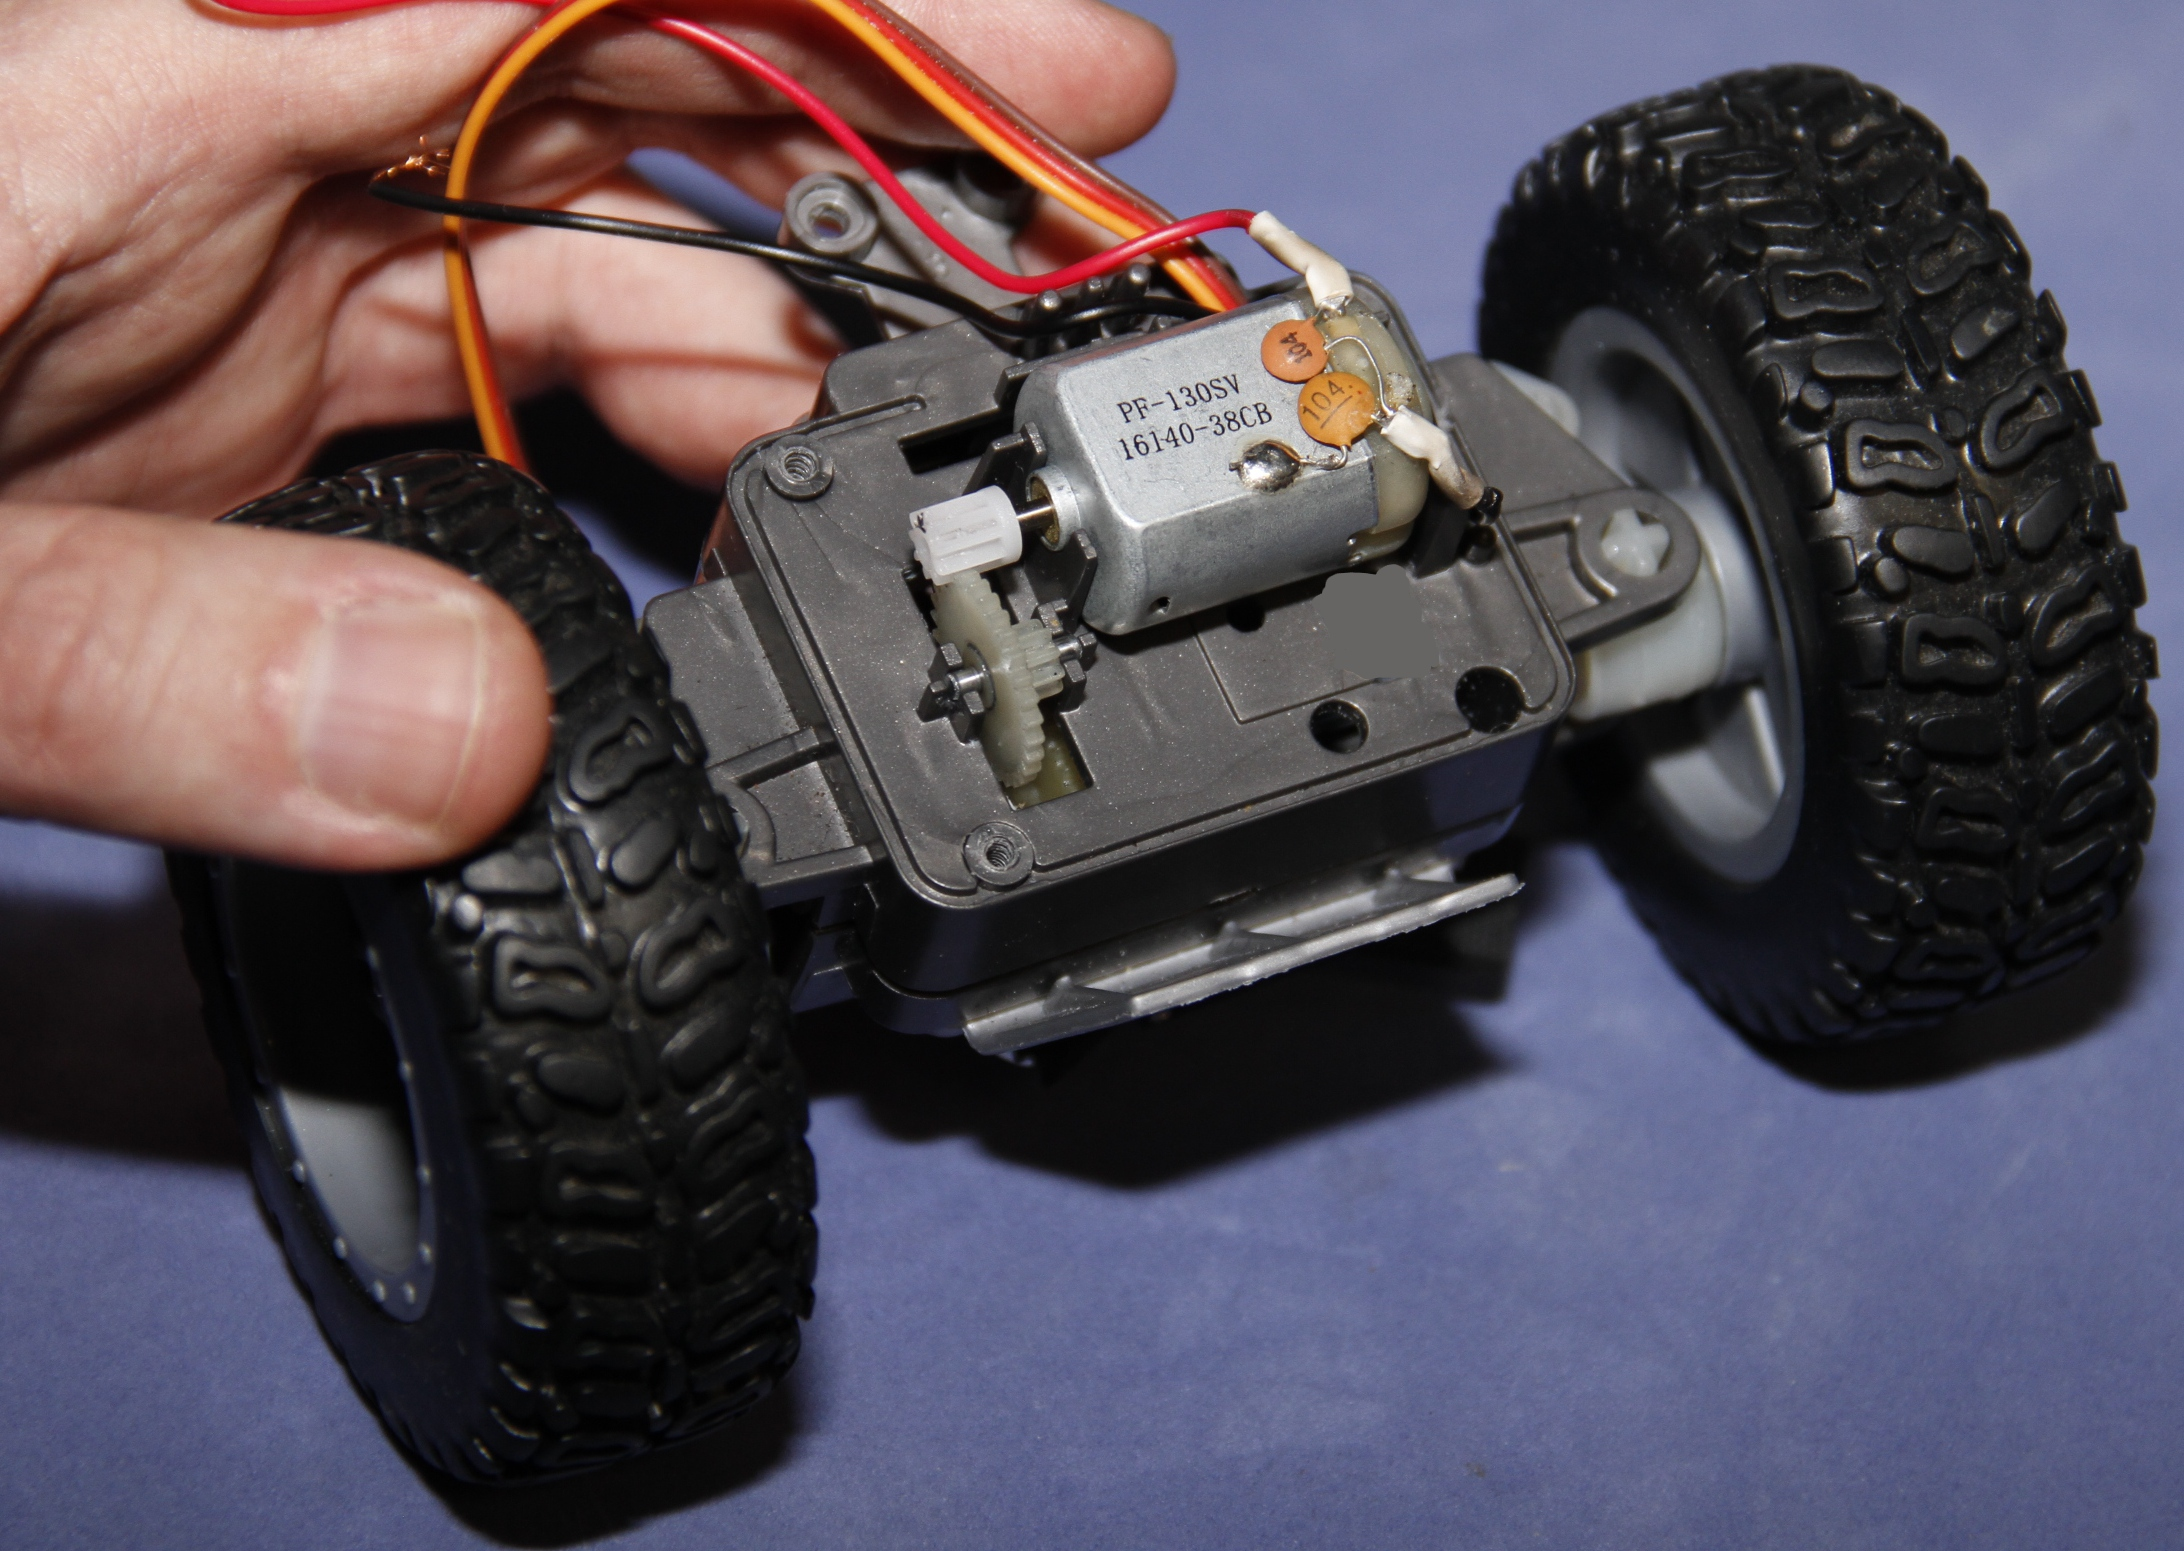 Picture of Disassembling the Front Axle - Middle Section - Motor Mounted